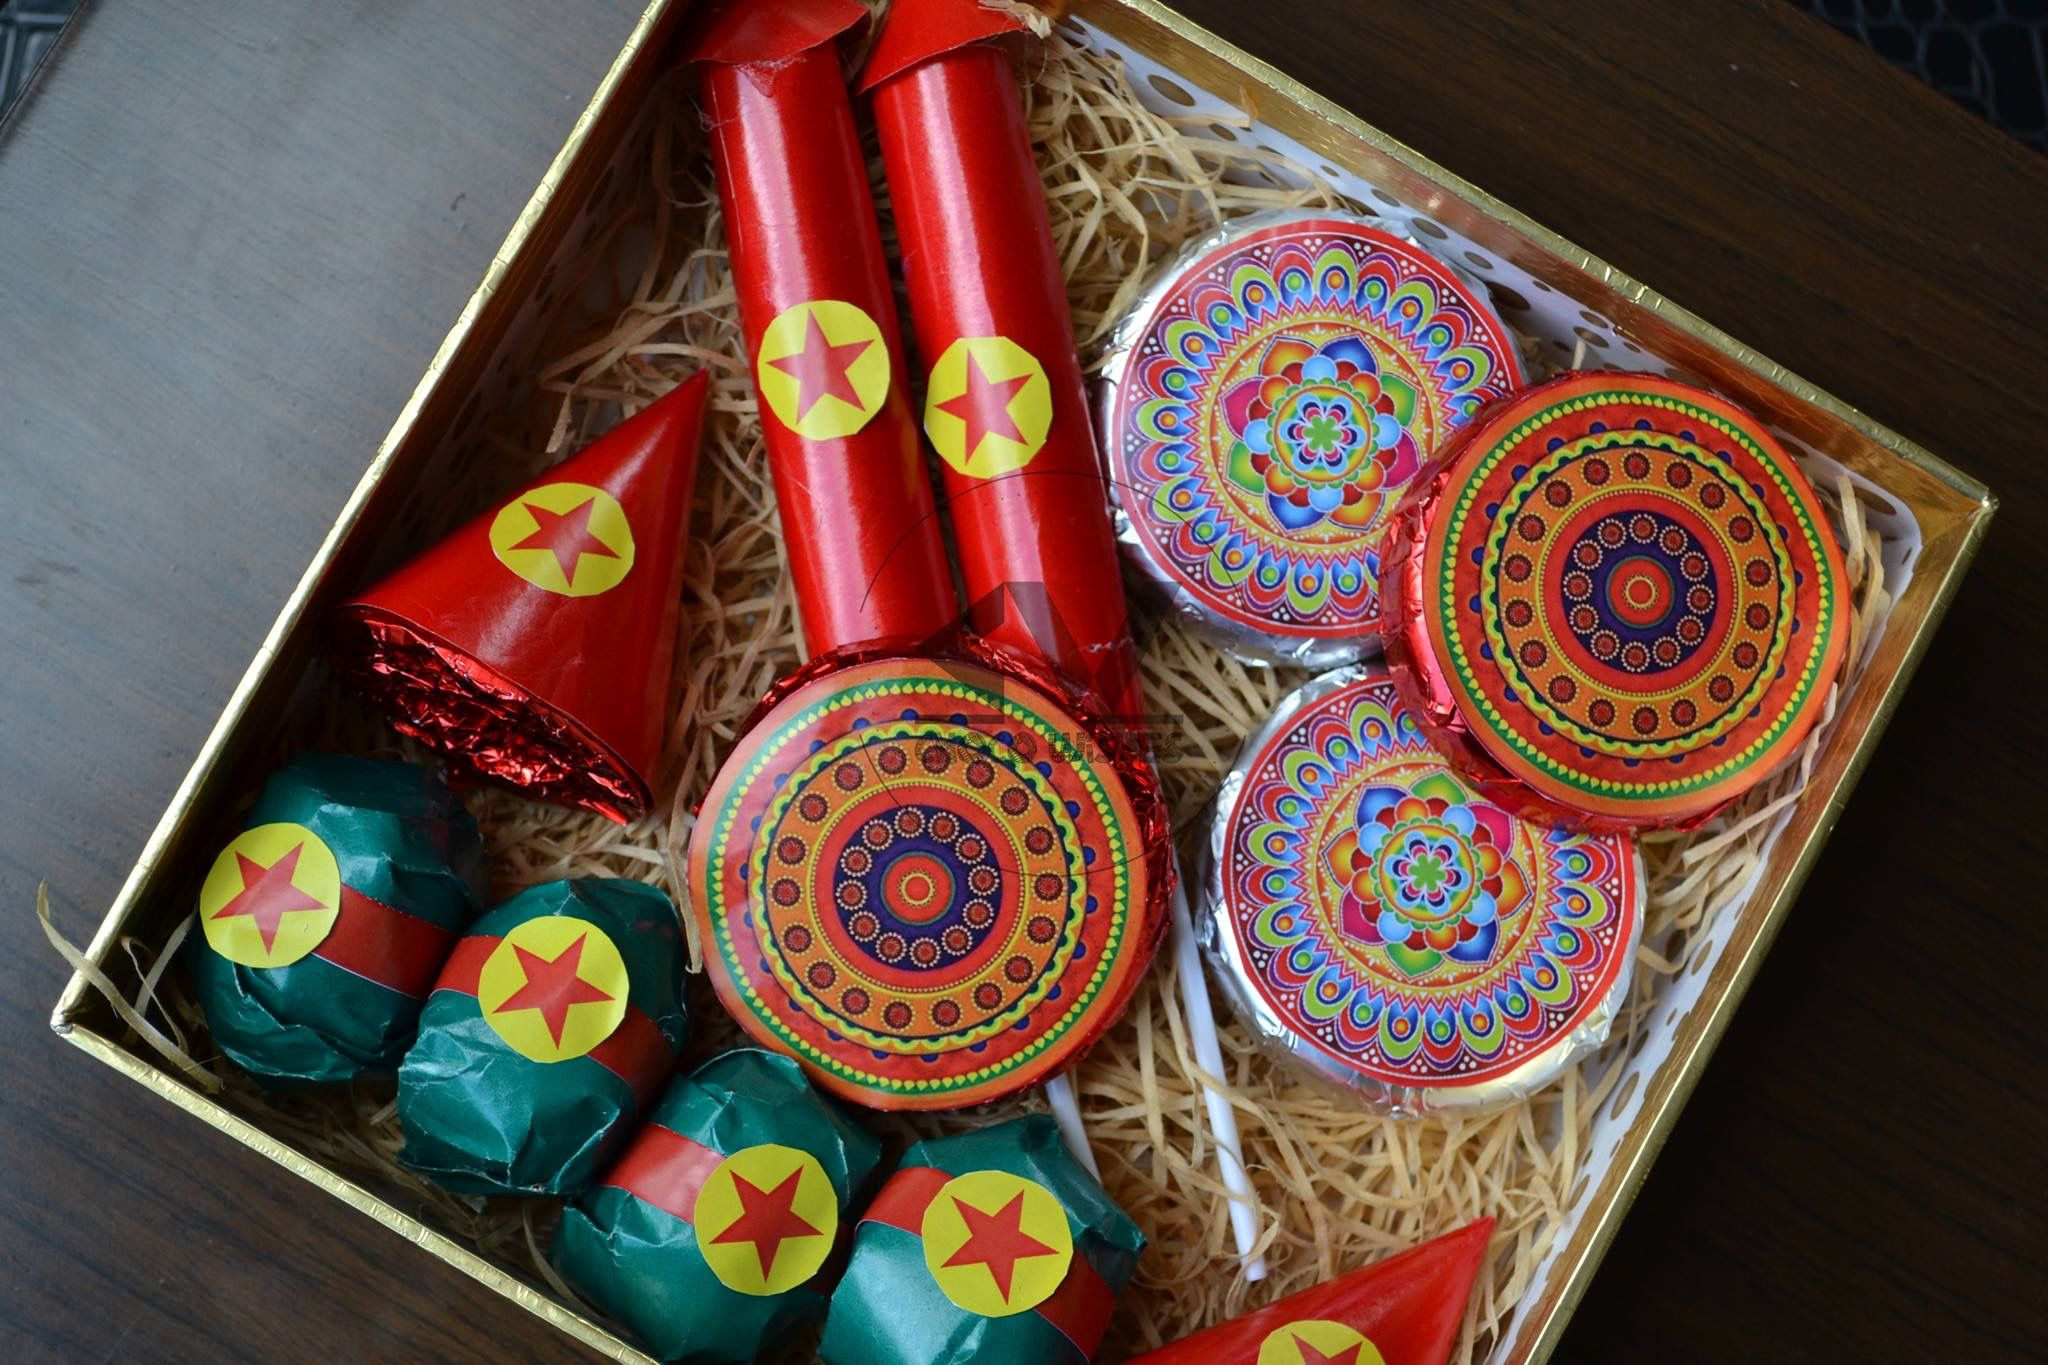 Diwali Chocolate Packing Ideas Diwali Gift Hampers Diwali Crackers Gift Hampers